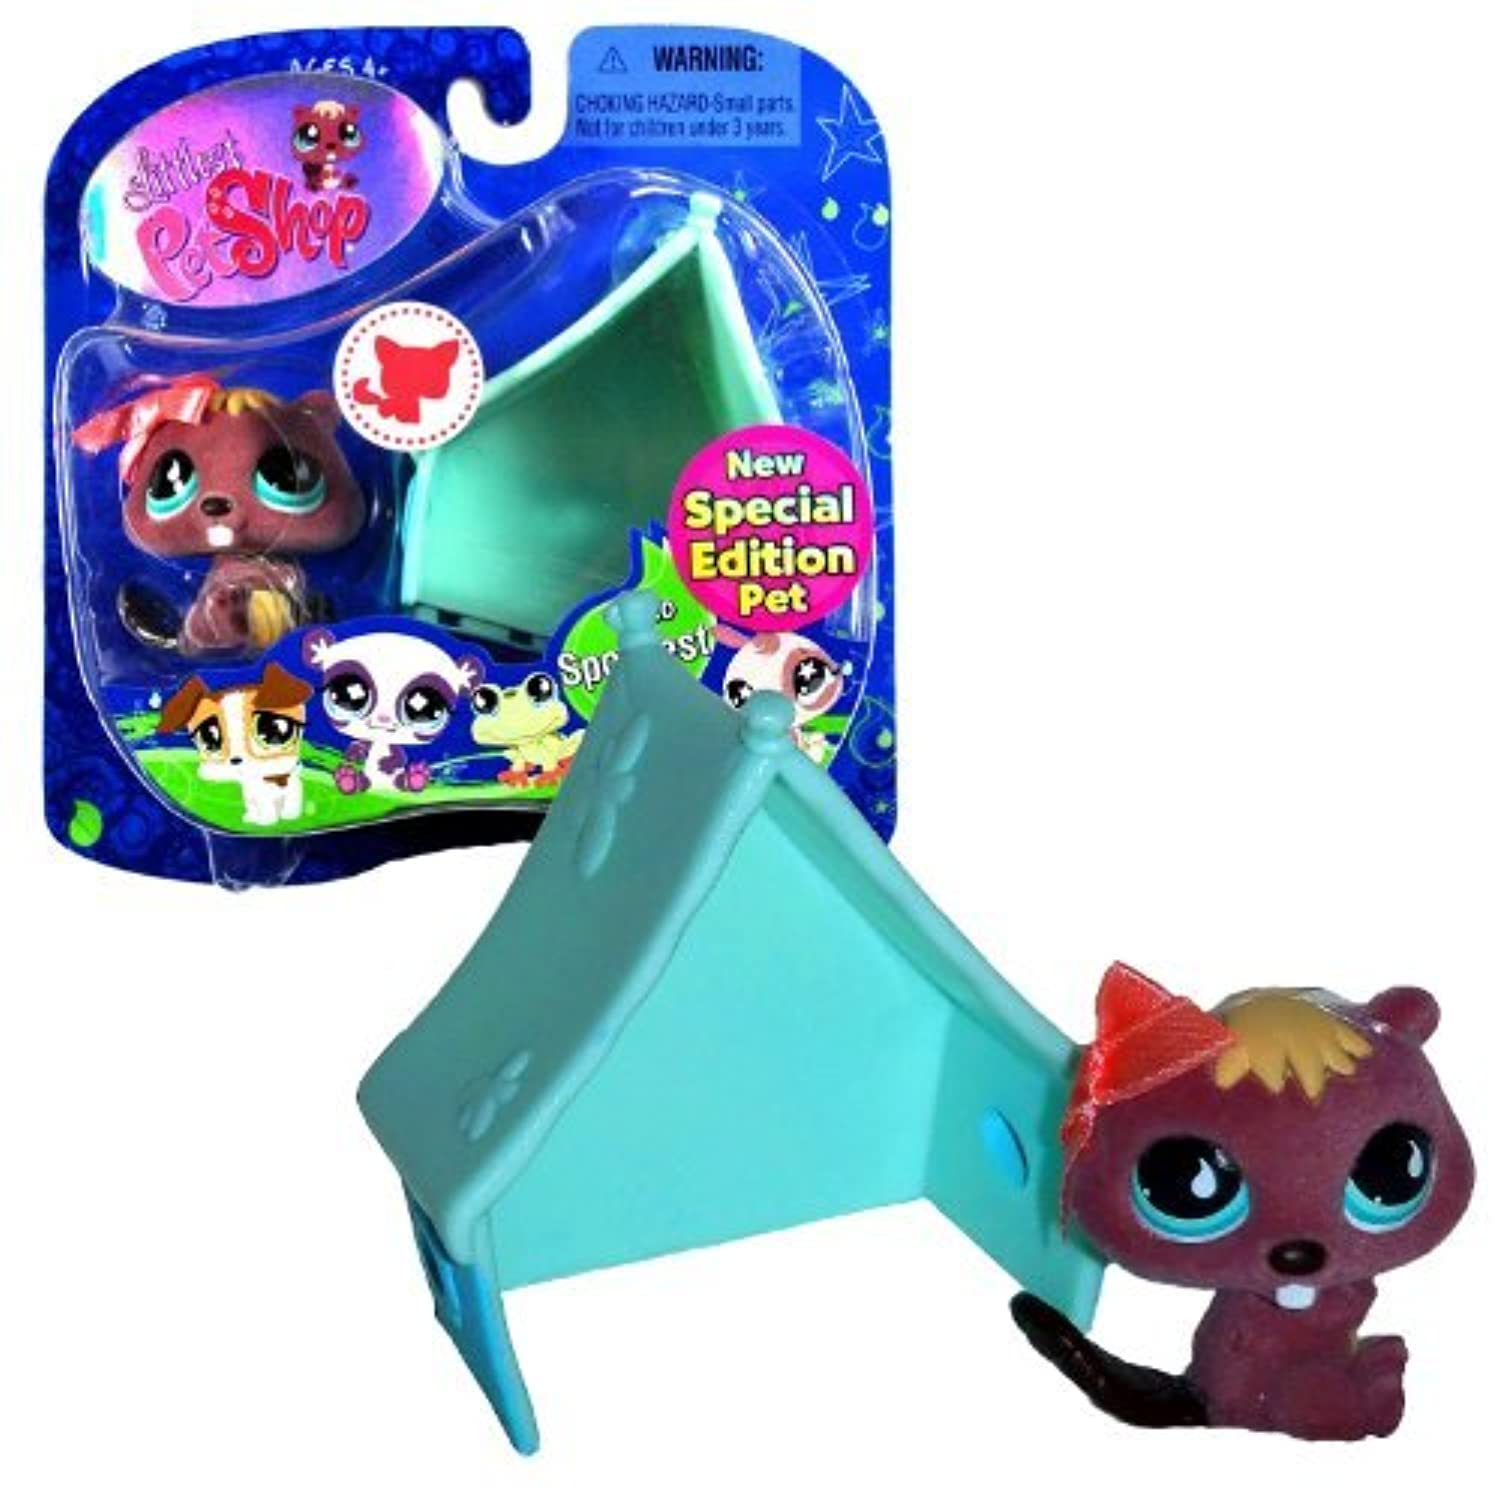 Hasbro Year 2008 Littlest Pet Shop Special Edition Pet - Sportiest Series Collectible Bobble Head Pet Figure Set #810 - Beaver with Pink Bow and Blue Tent by Littlest Pet Shop [並行輸入品]